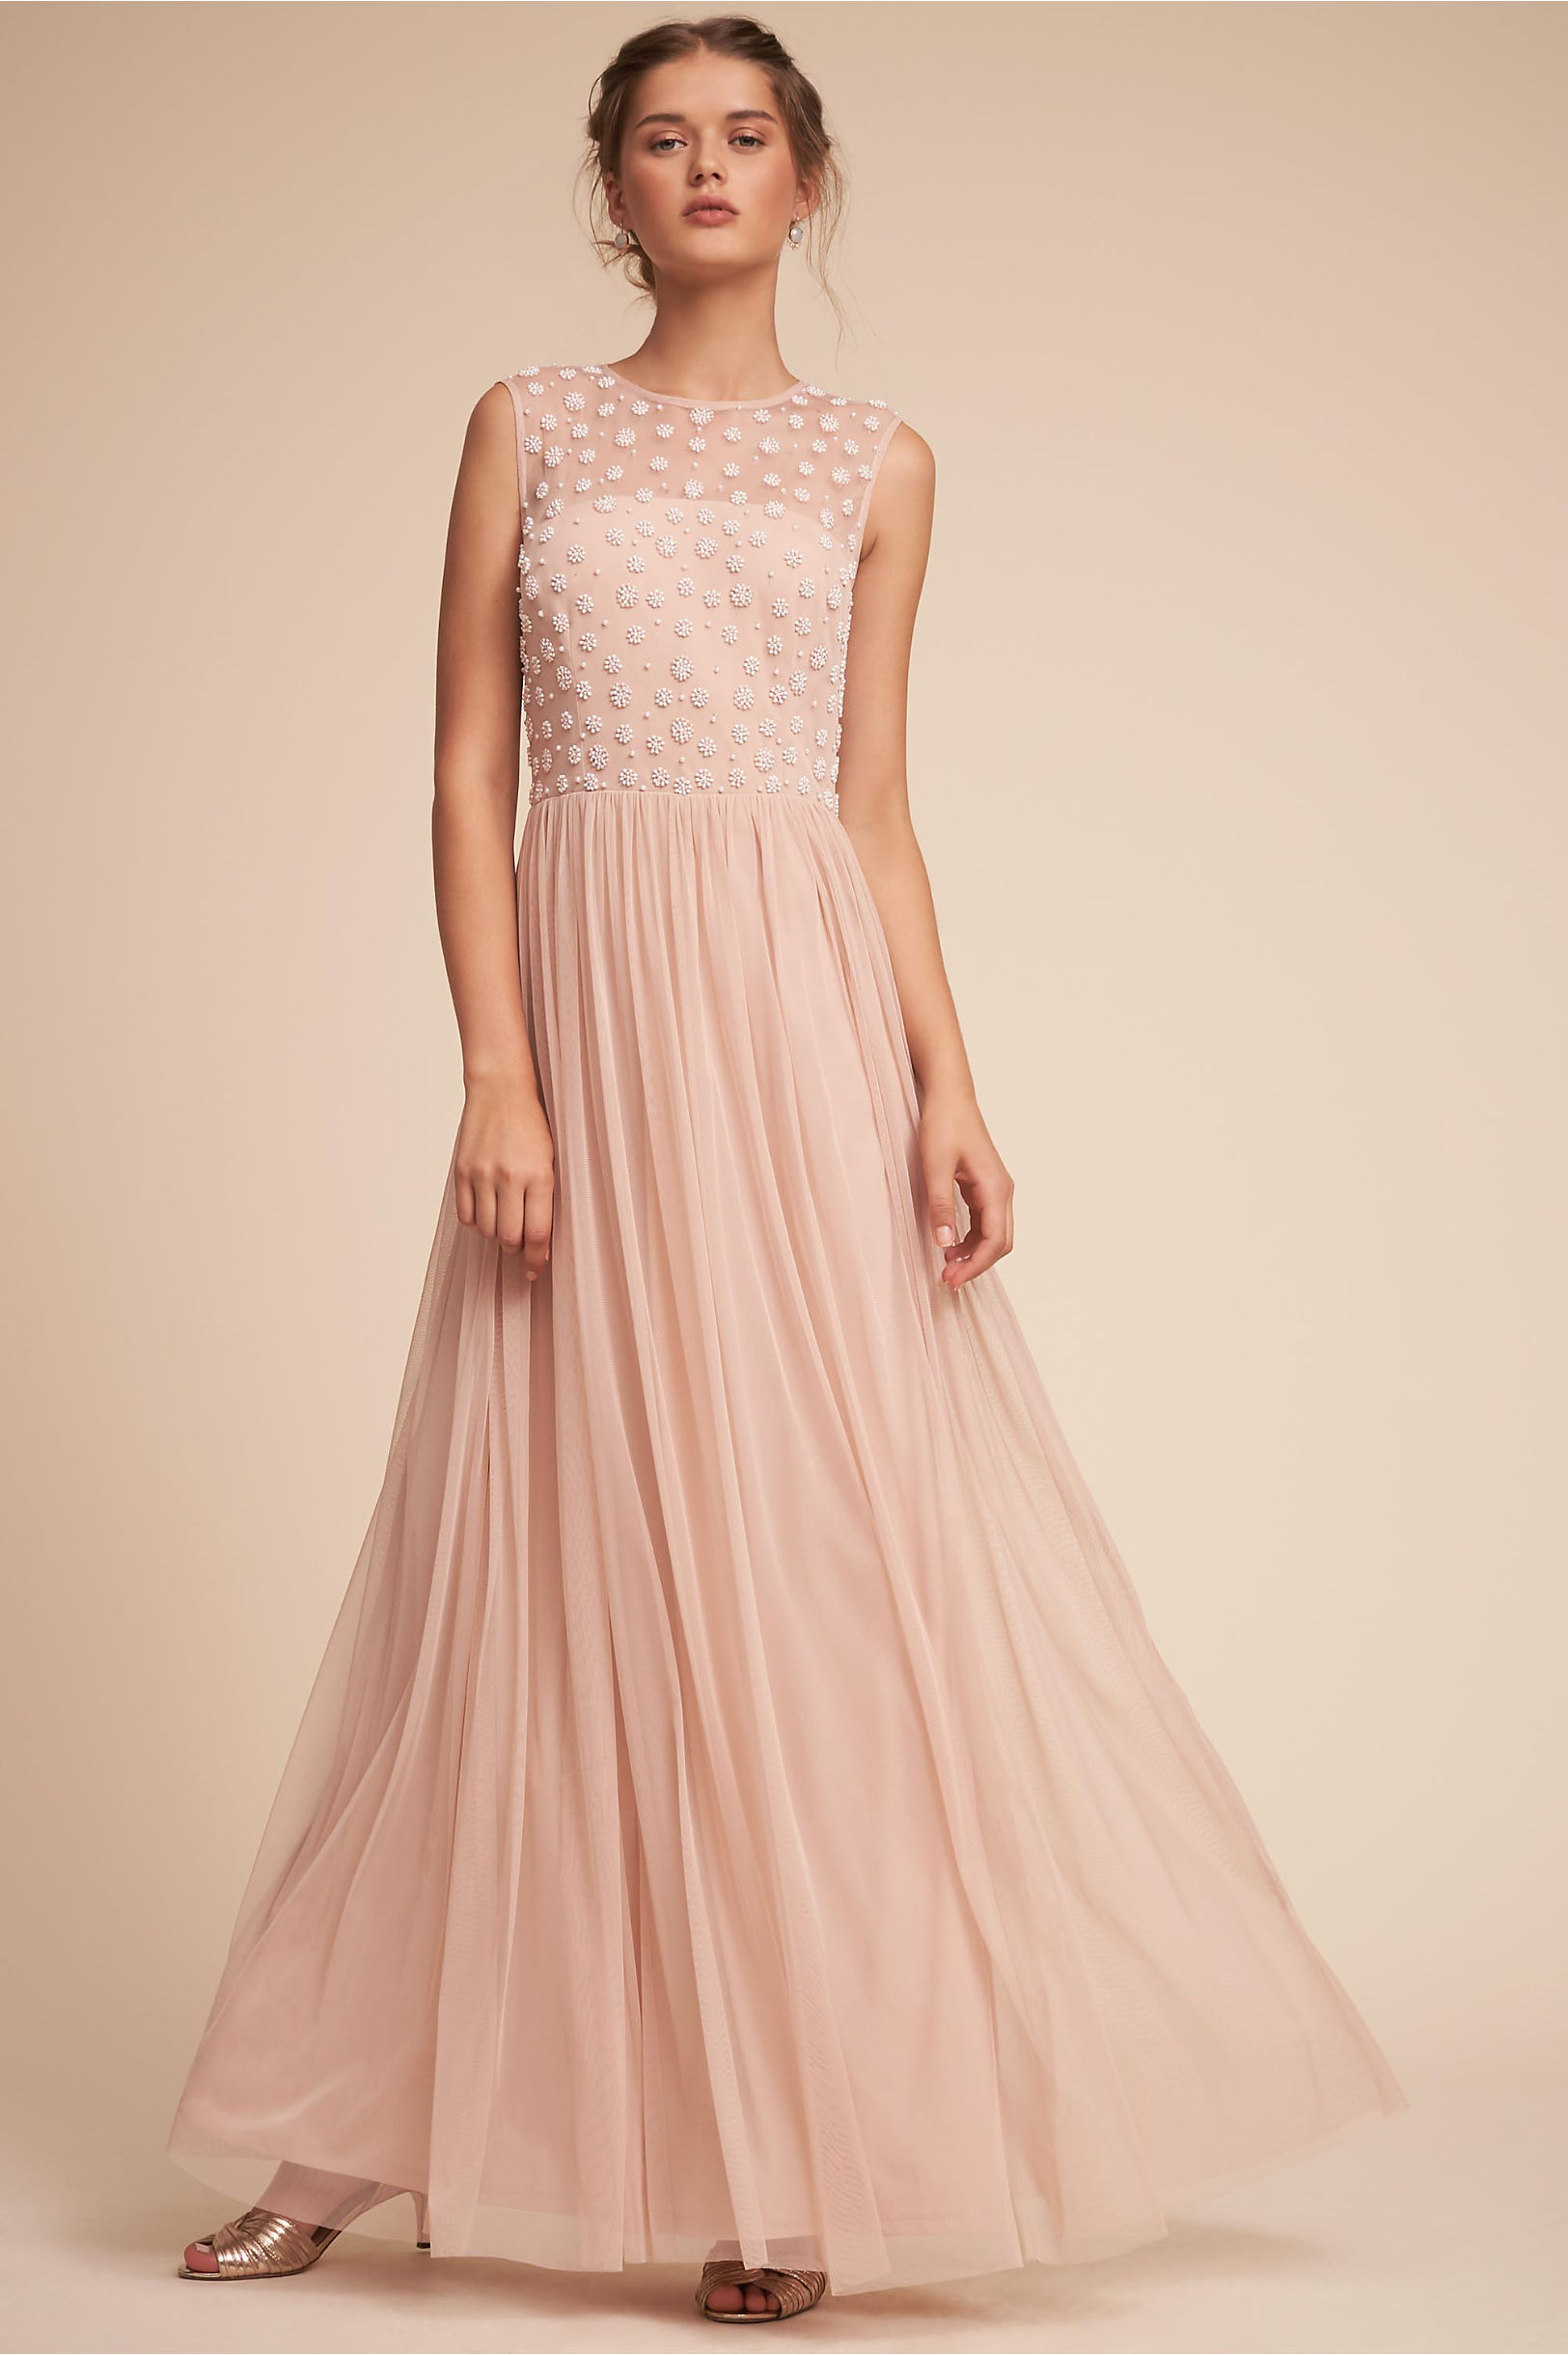 Blush colored light pink bridesmaid dresses bhldn emma dress ombrellifo Choice Image